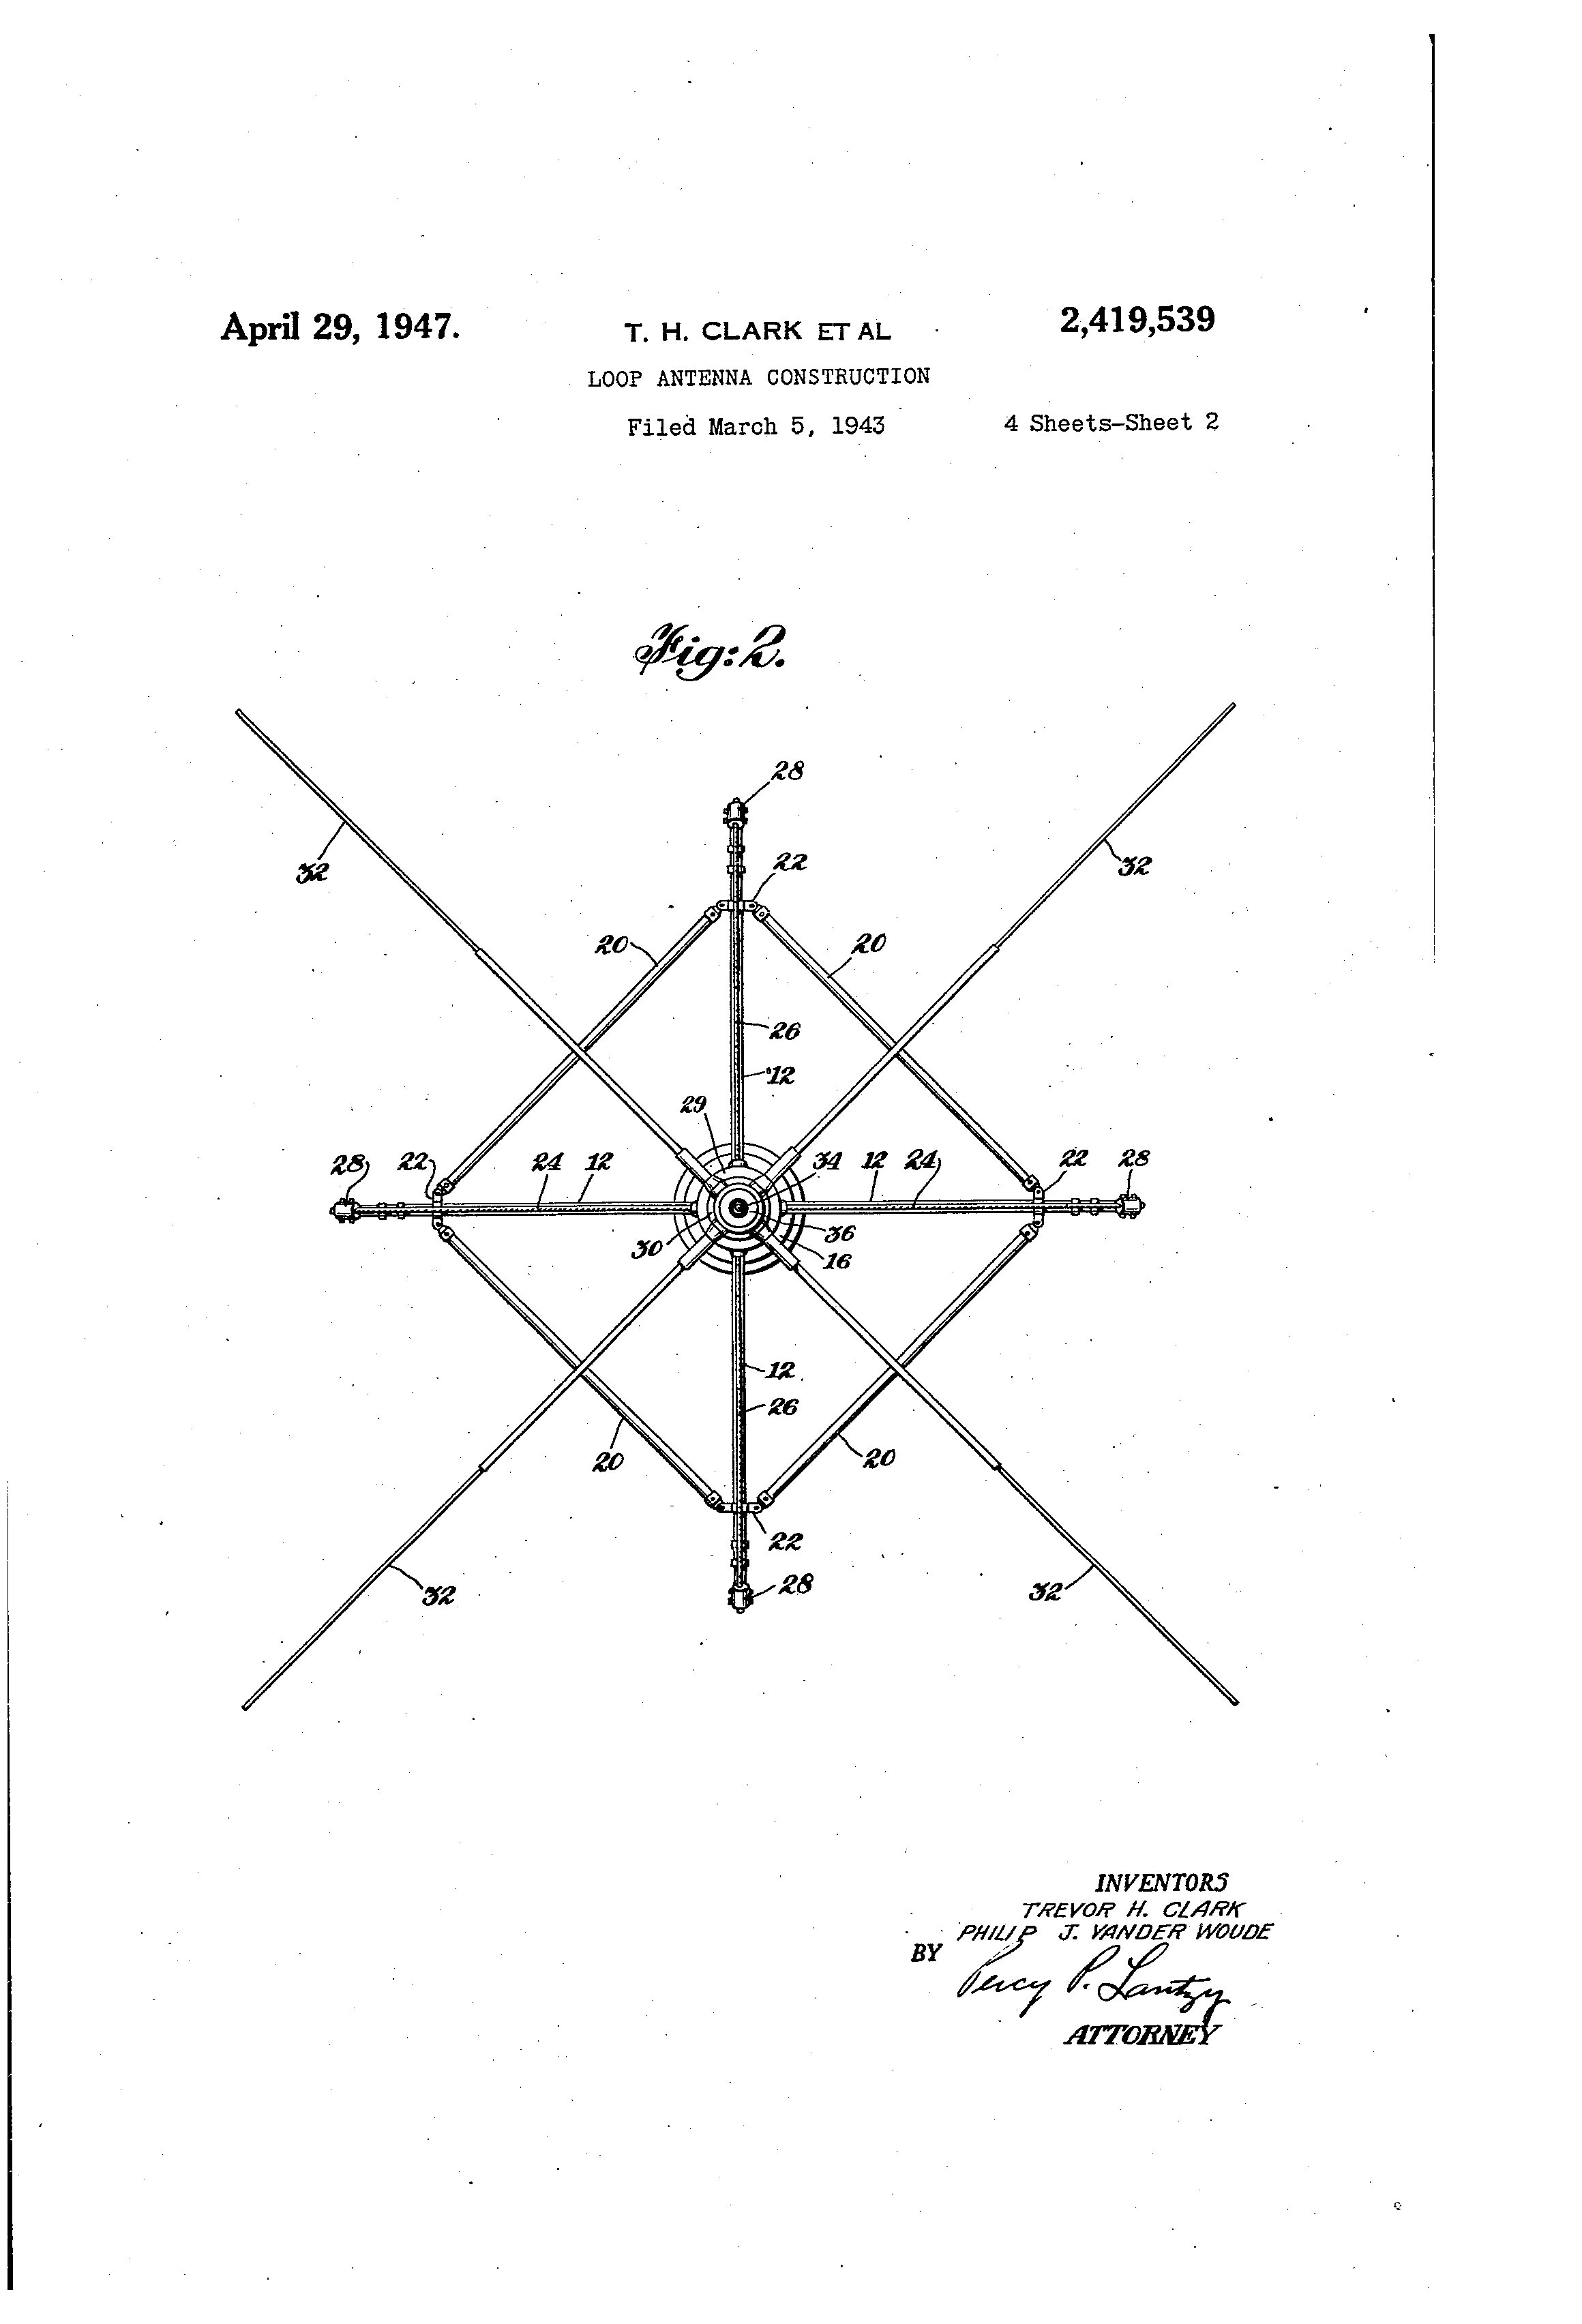 patent us2419539 - loop antenna construction